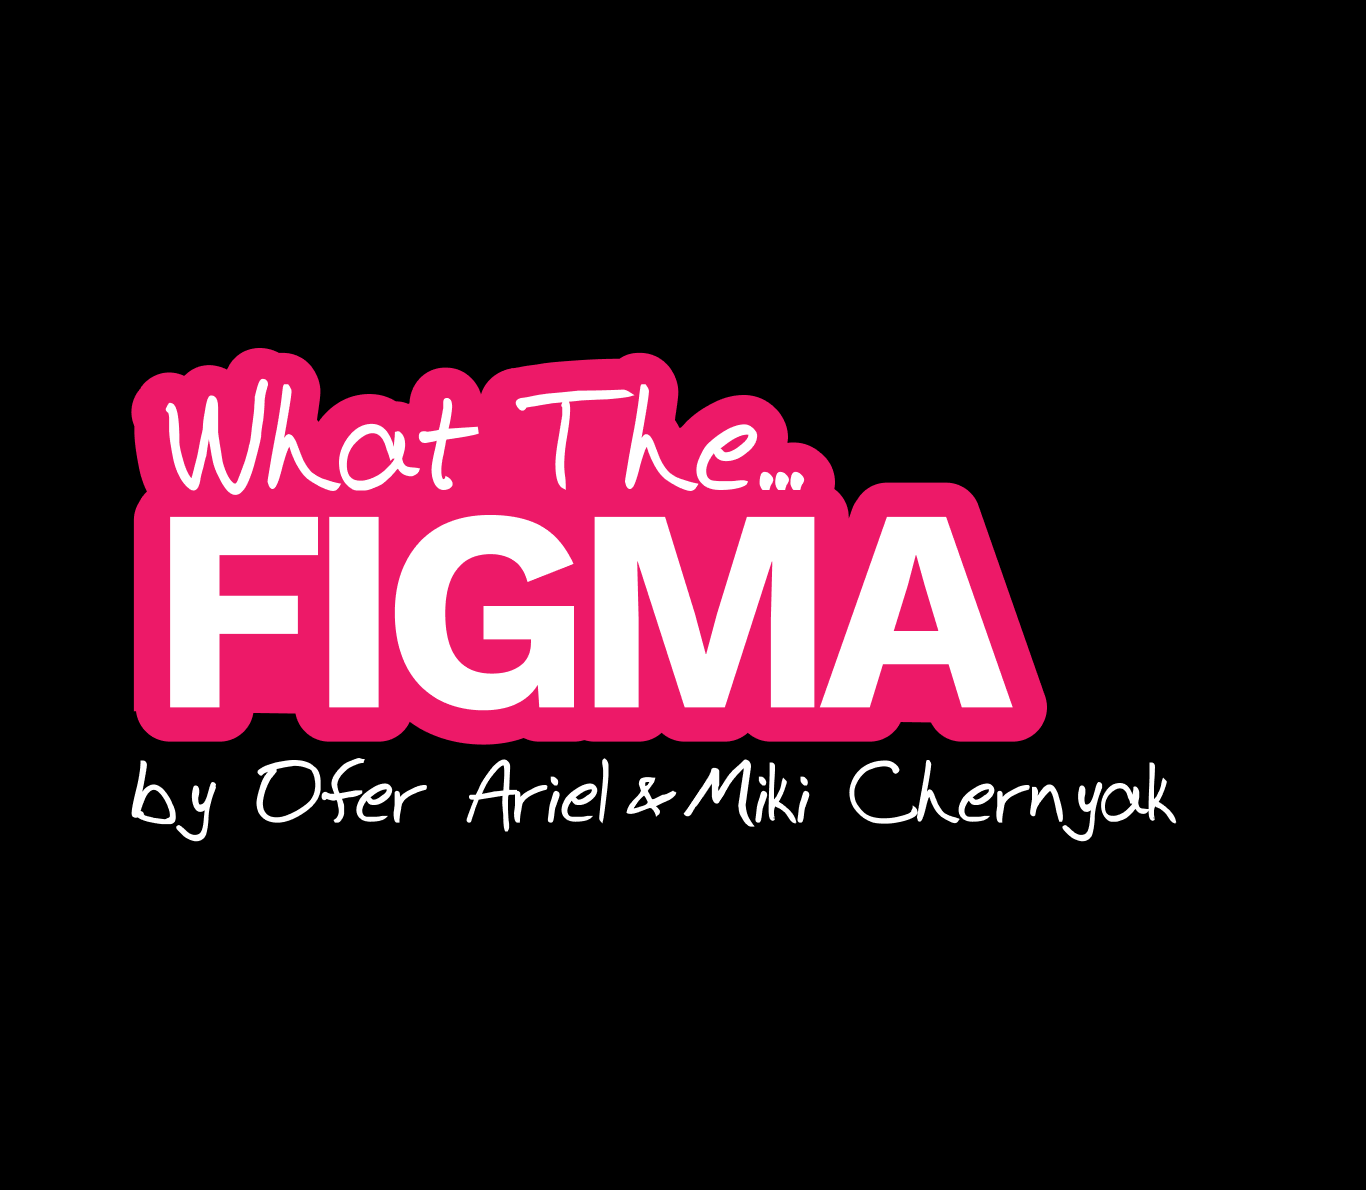 What the Figma